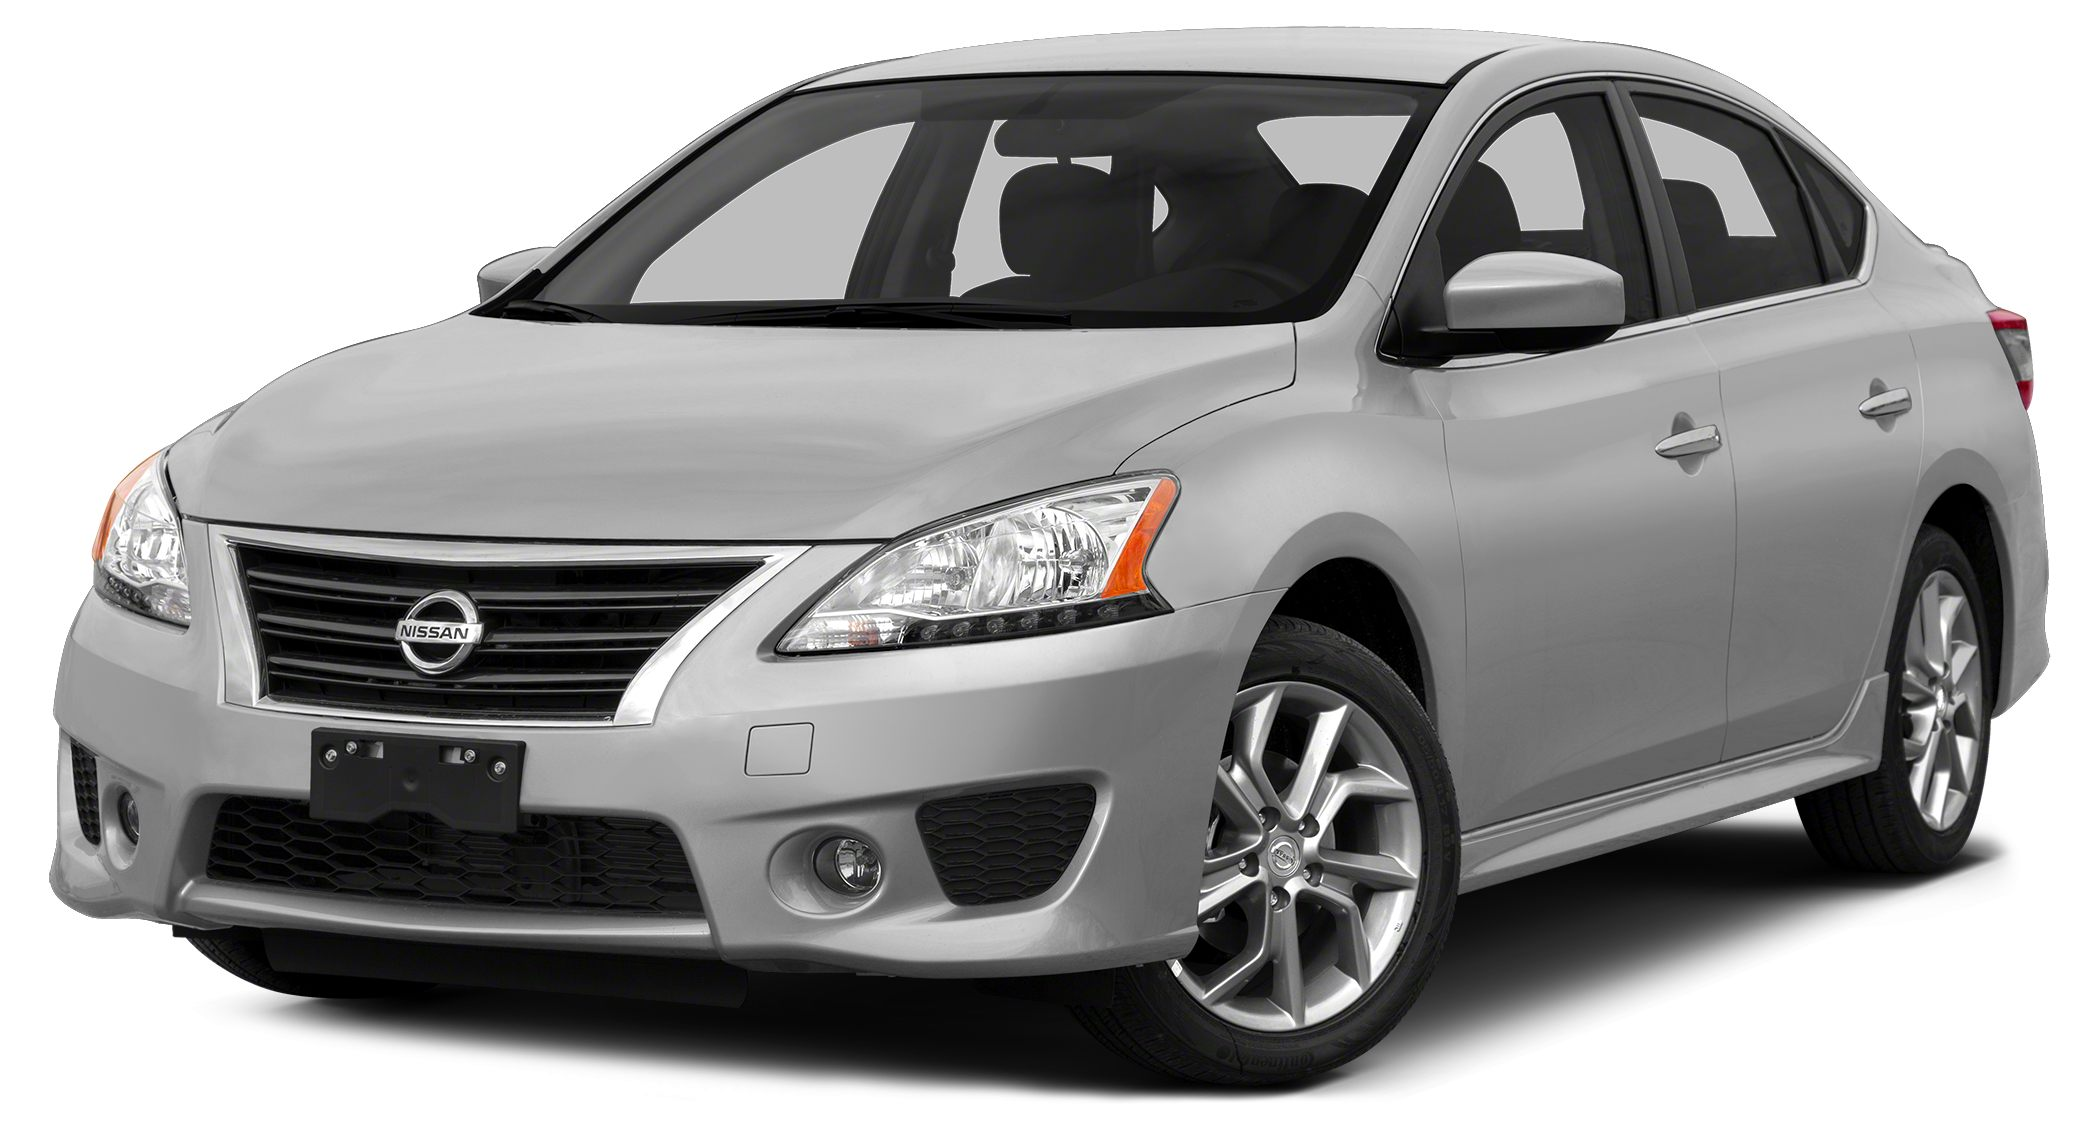 2013 Nissan Sentra SR This outstanding example of a 2013 Nissan Sentra SR is offered by Conley Bui